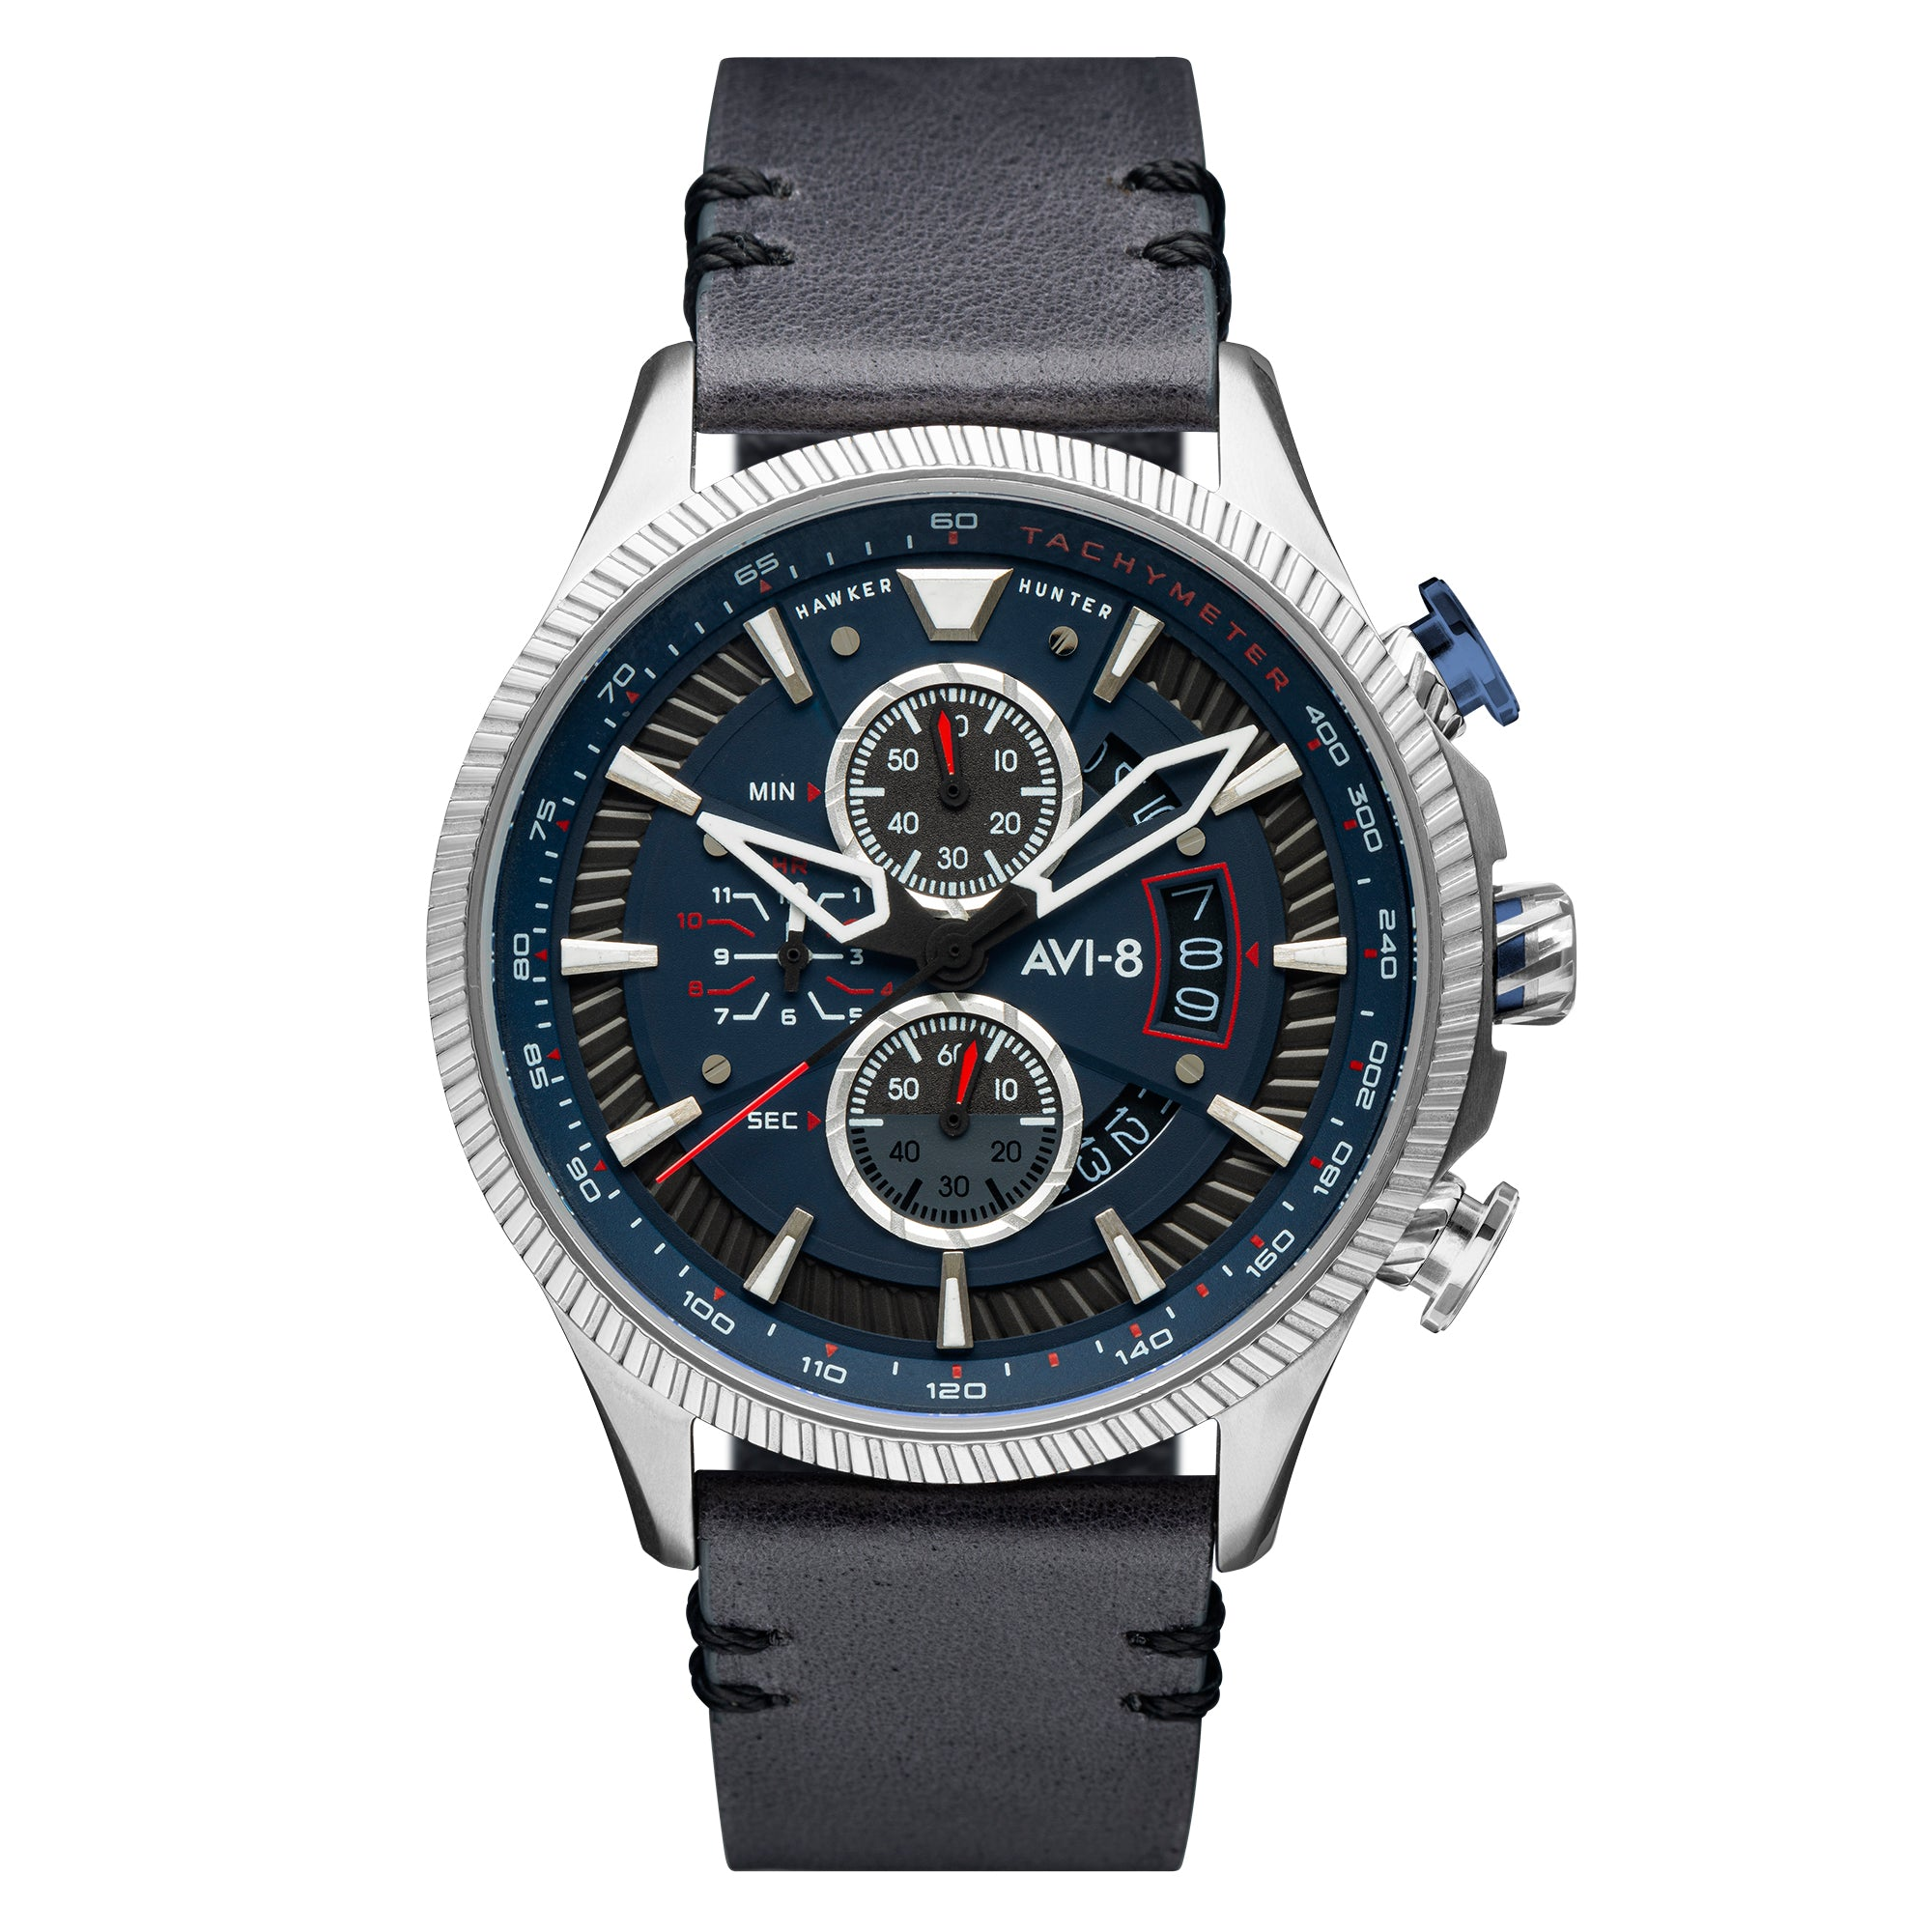 Hawker Hunter - Avon Chronograph Edition (Marine Grey)